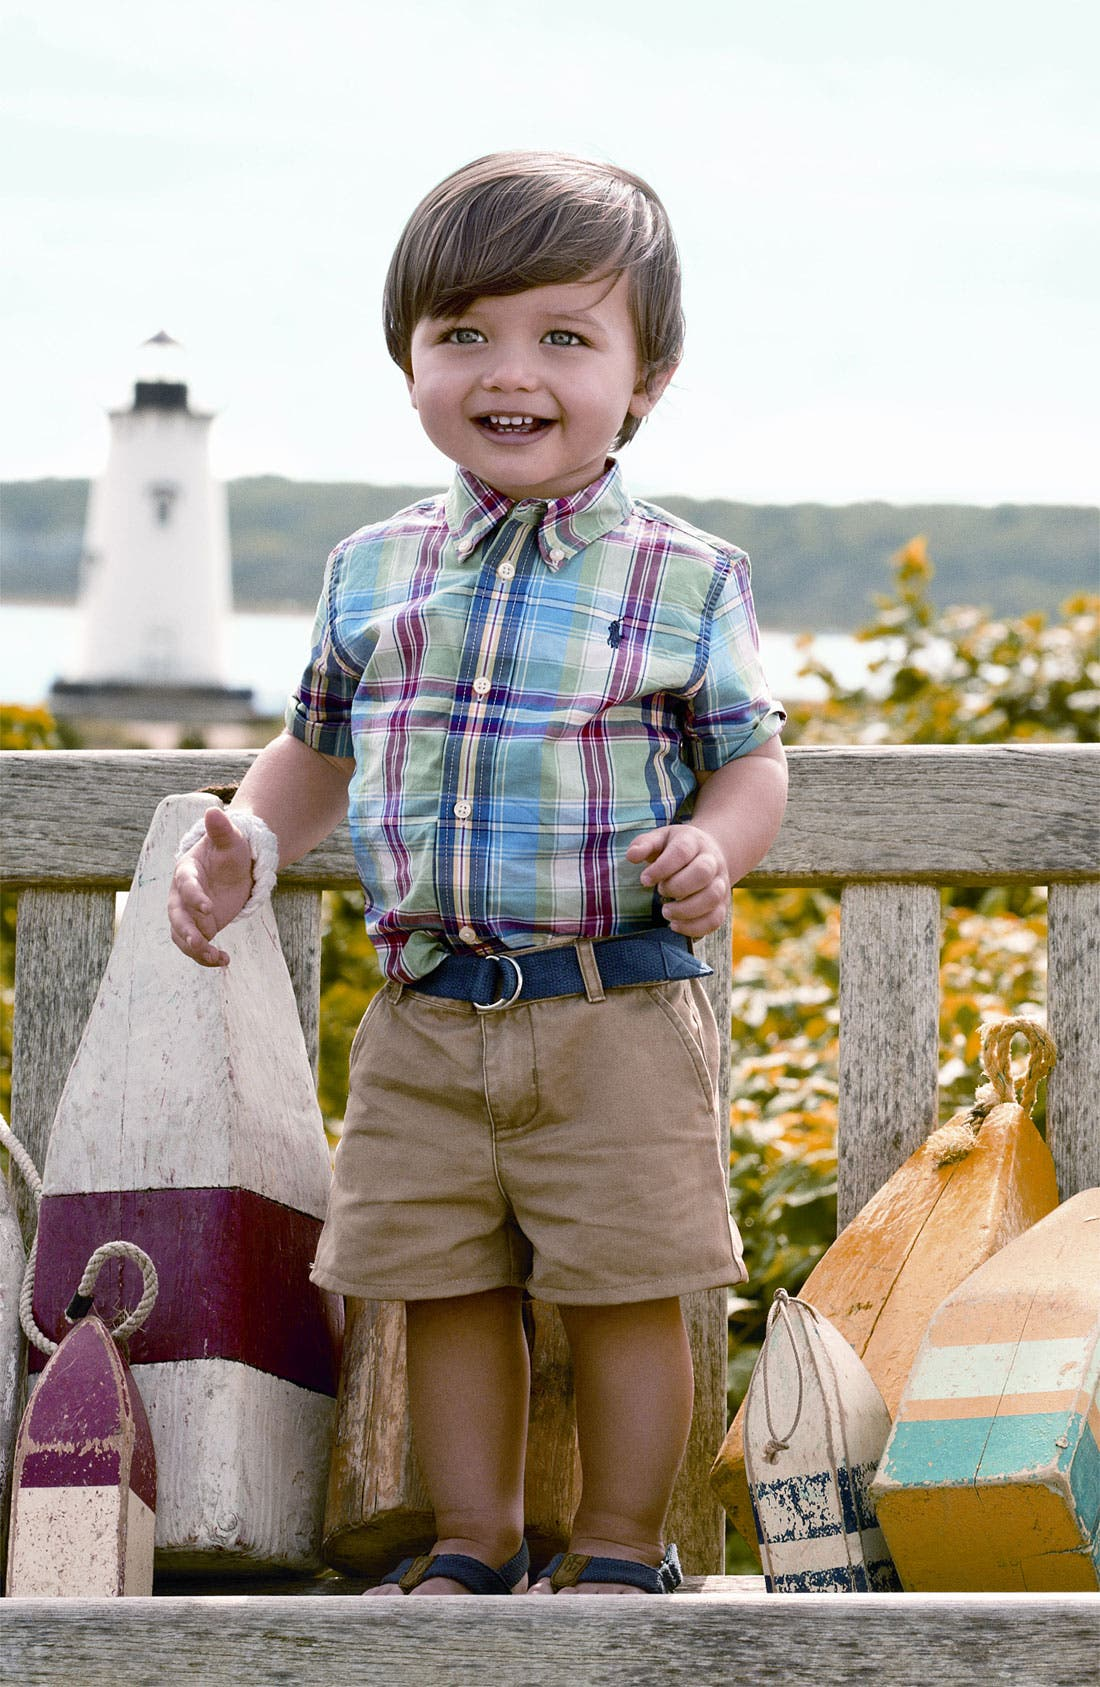 Main Image - Ralph Lauren Shirt, Shorts & Boat Shoe (Infant)